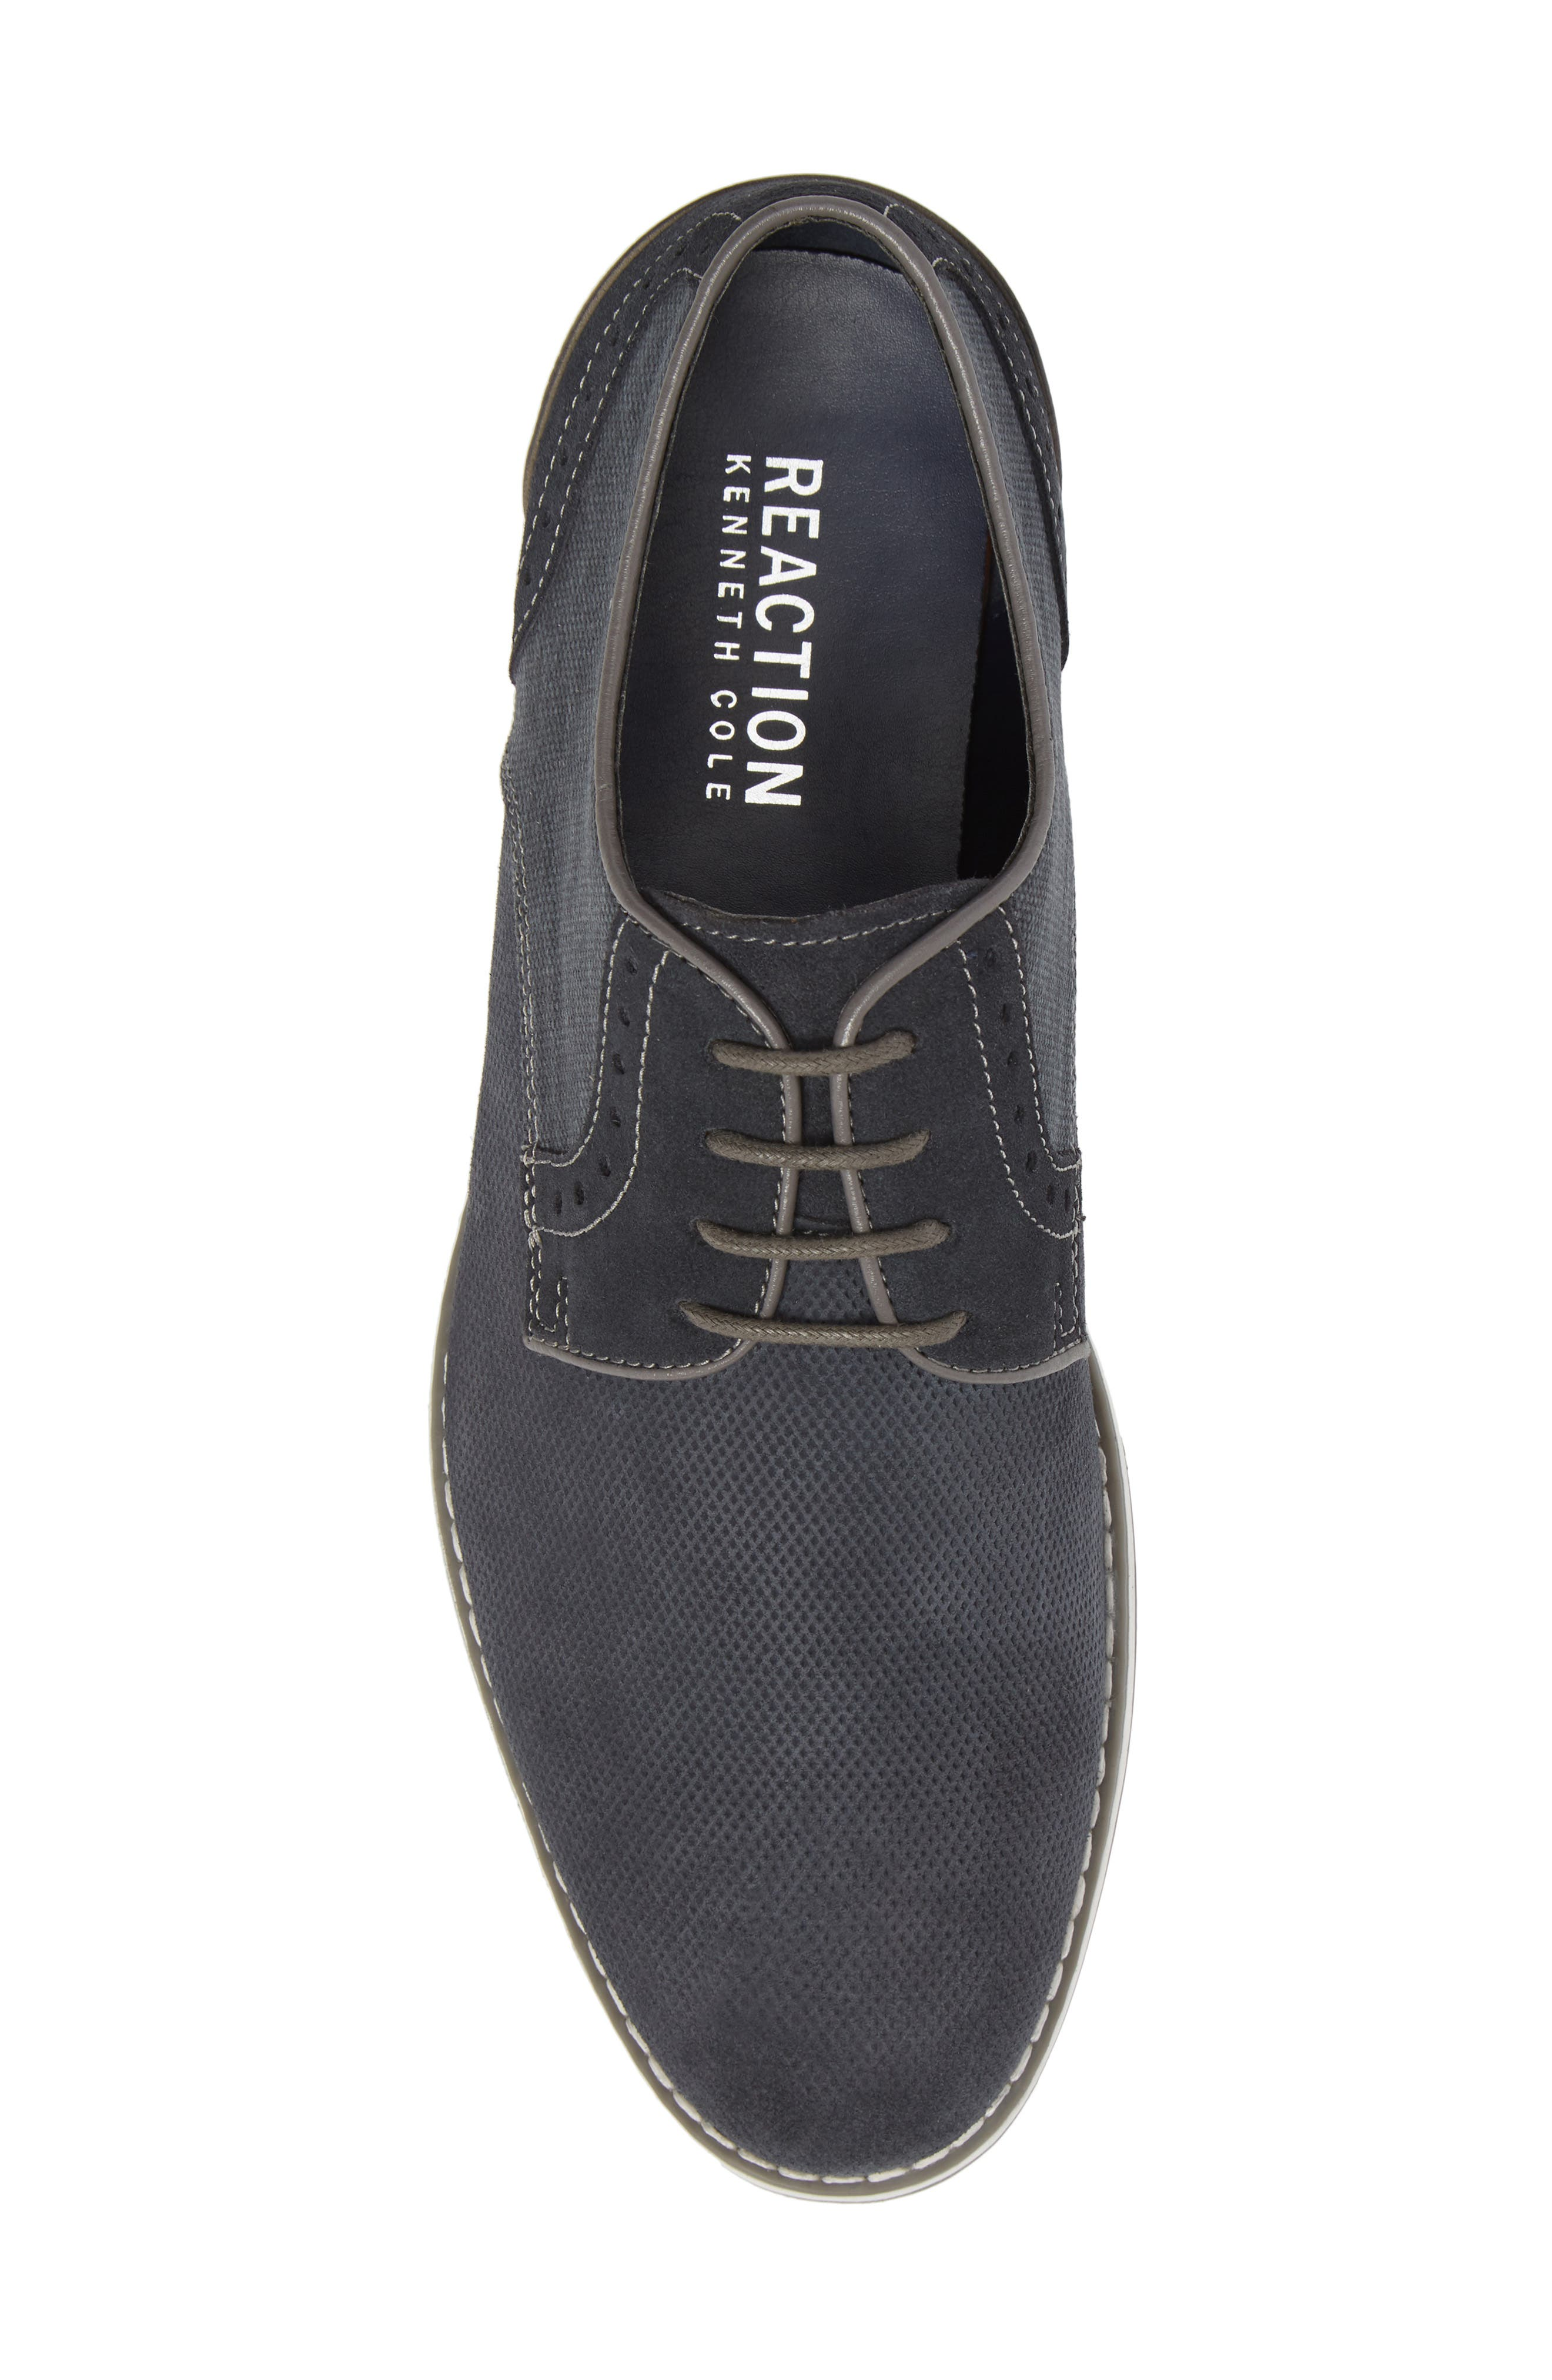 REACTION KENNETH COLE, Weiser Lace-up Derby, Alternate thumbnail 5, color, 410